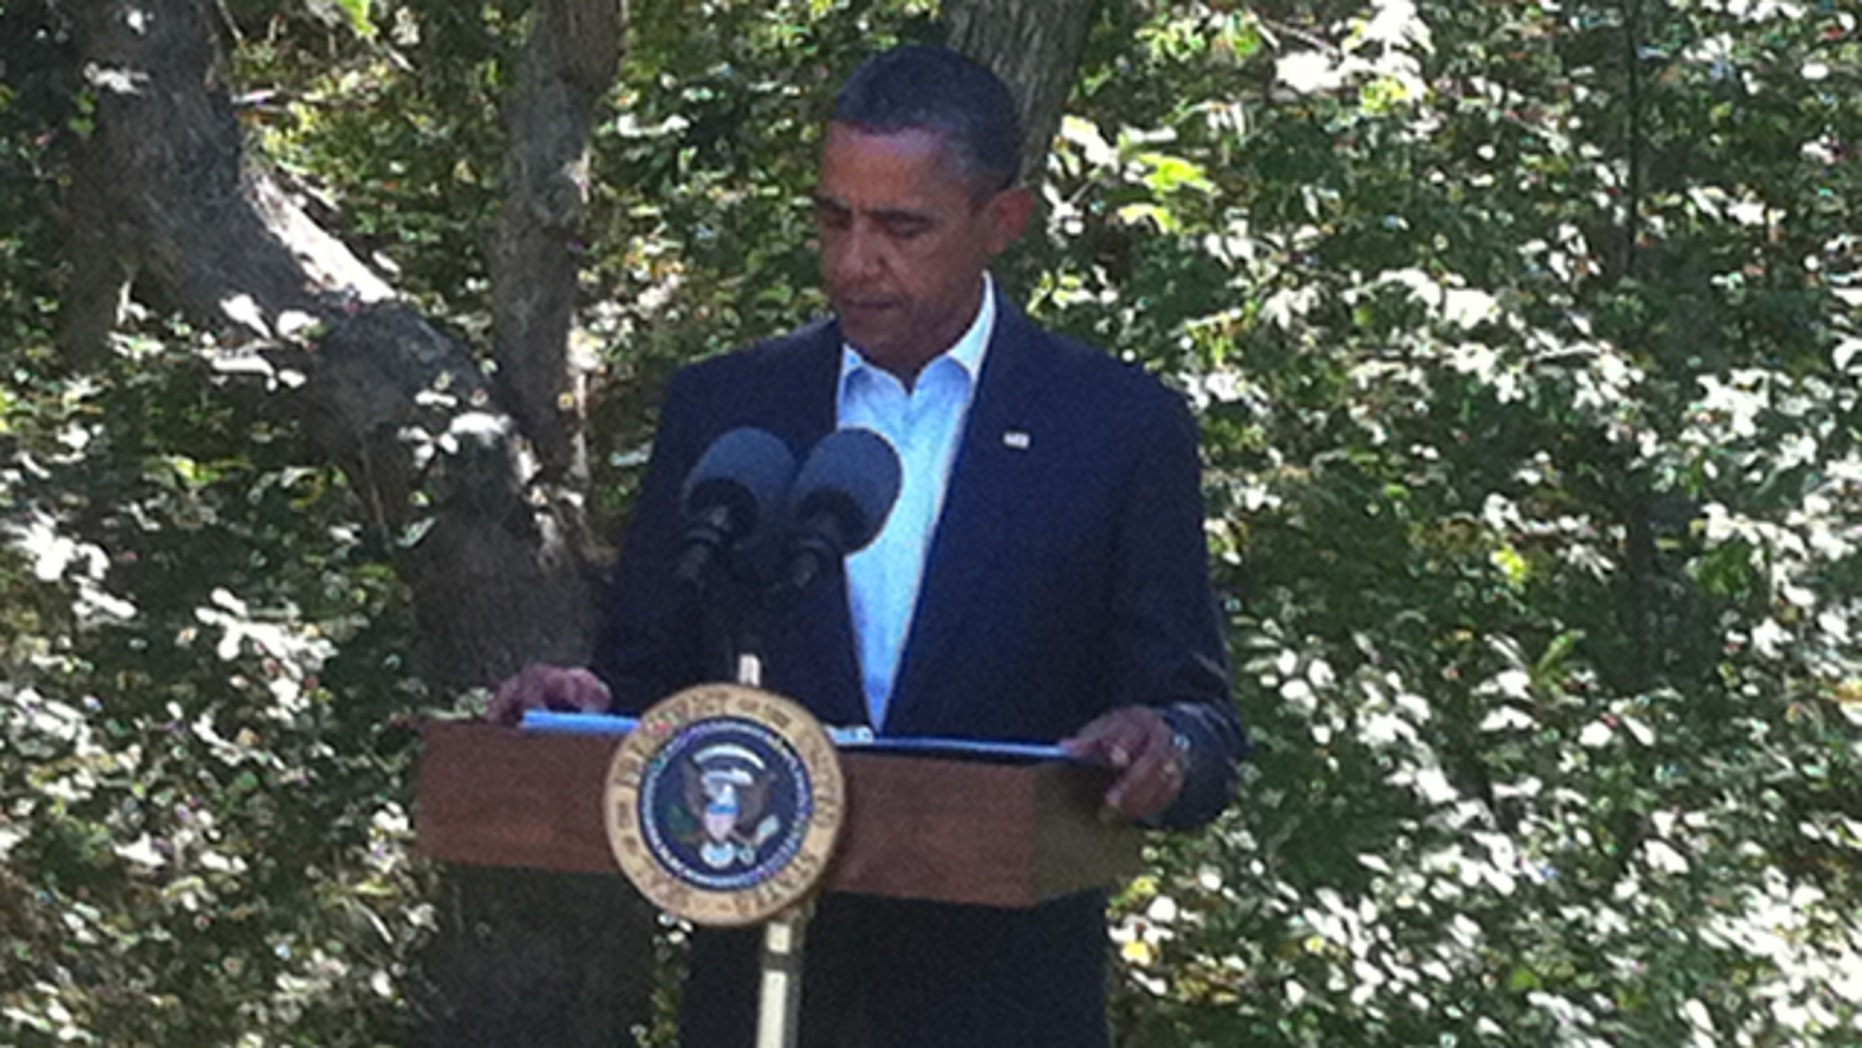 President Obama discusses the developments in Libya in Martha's Vineyard Aug. 22.